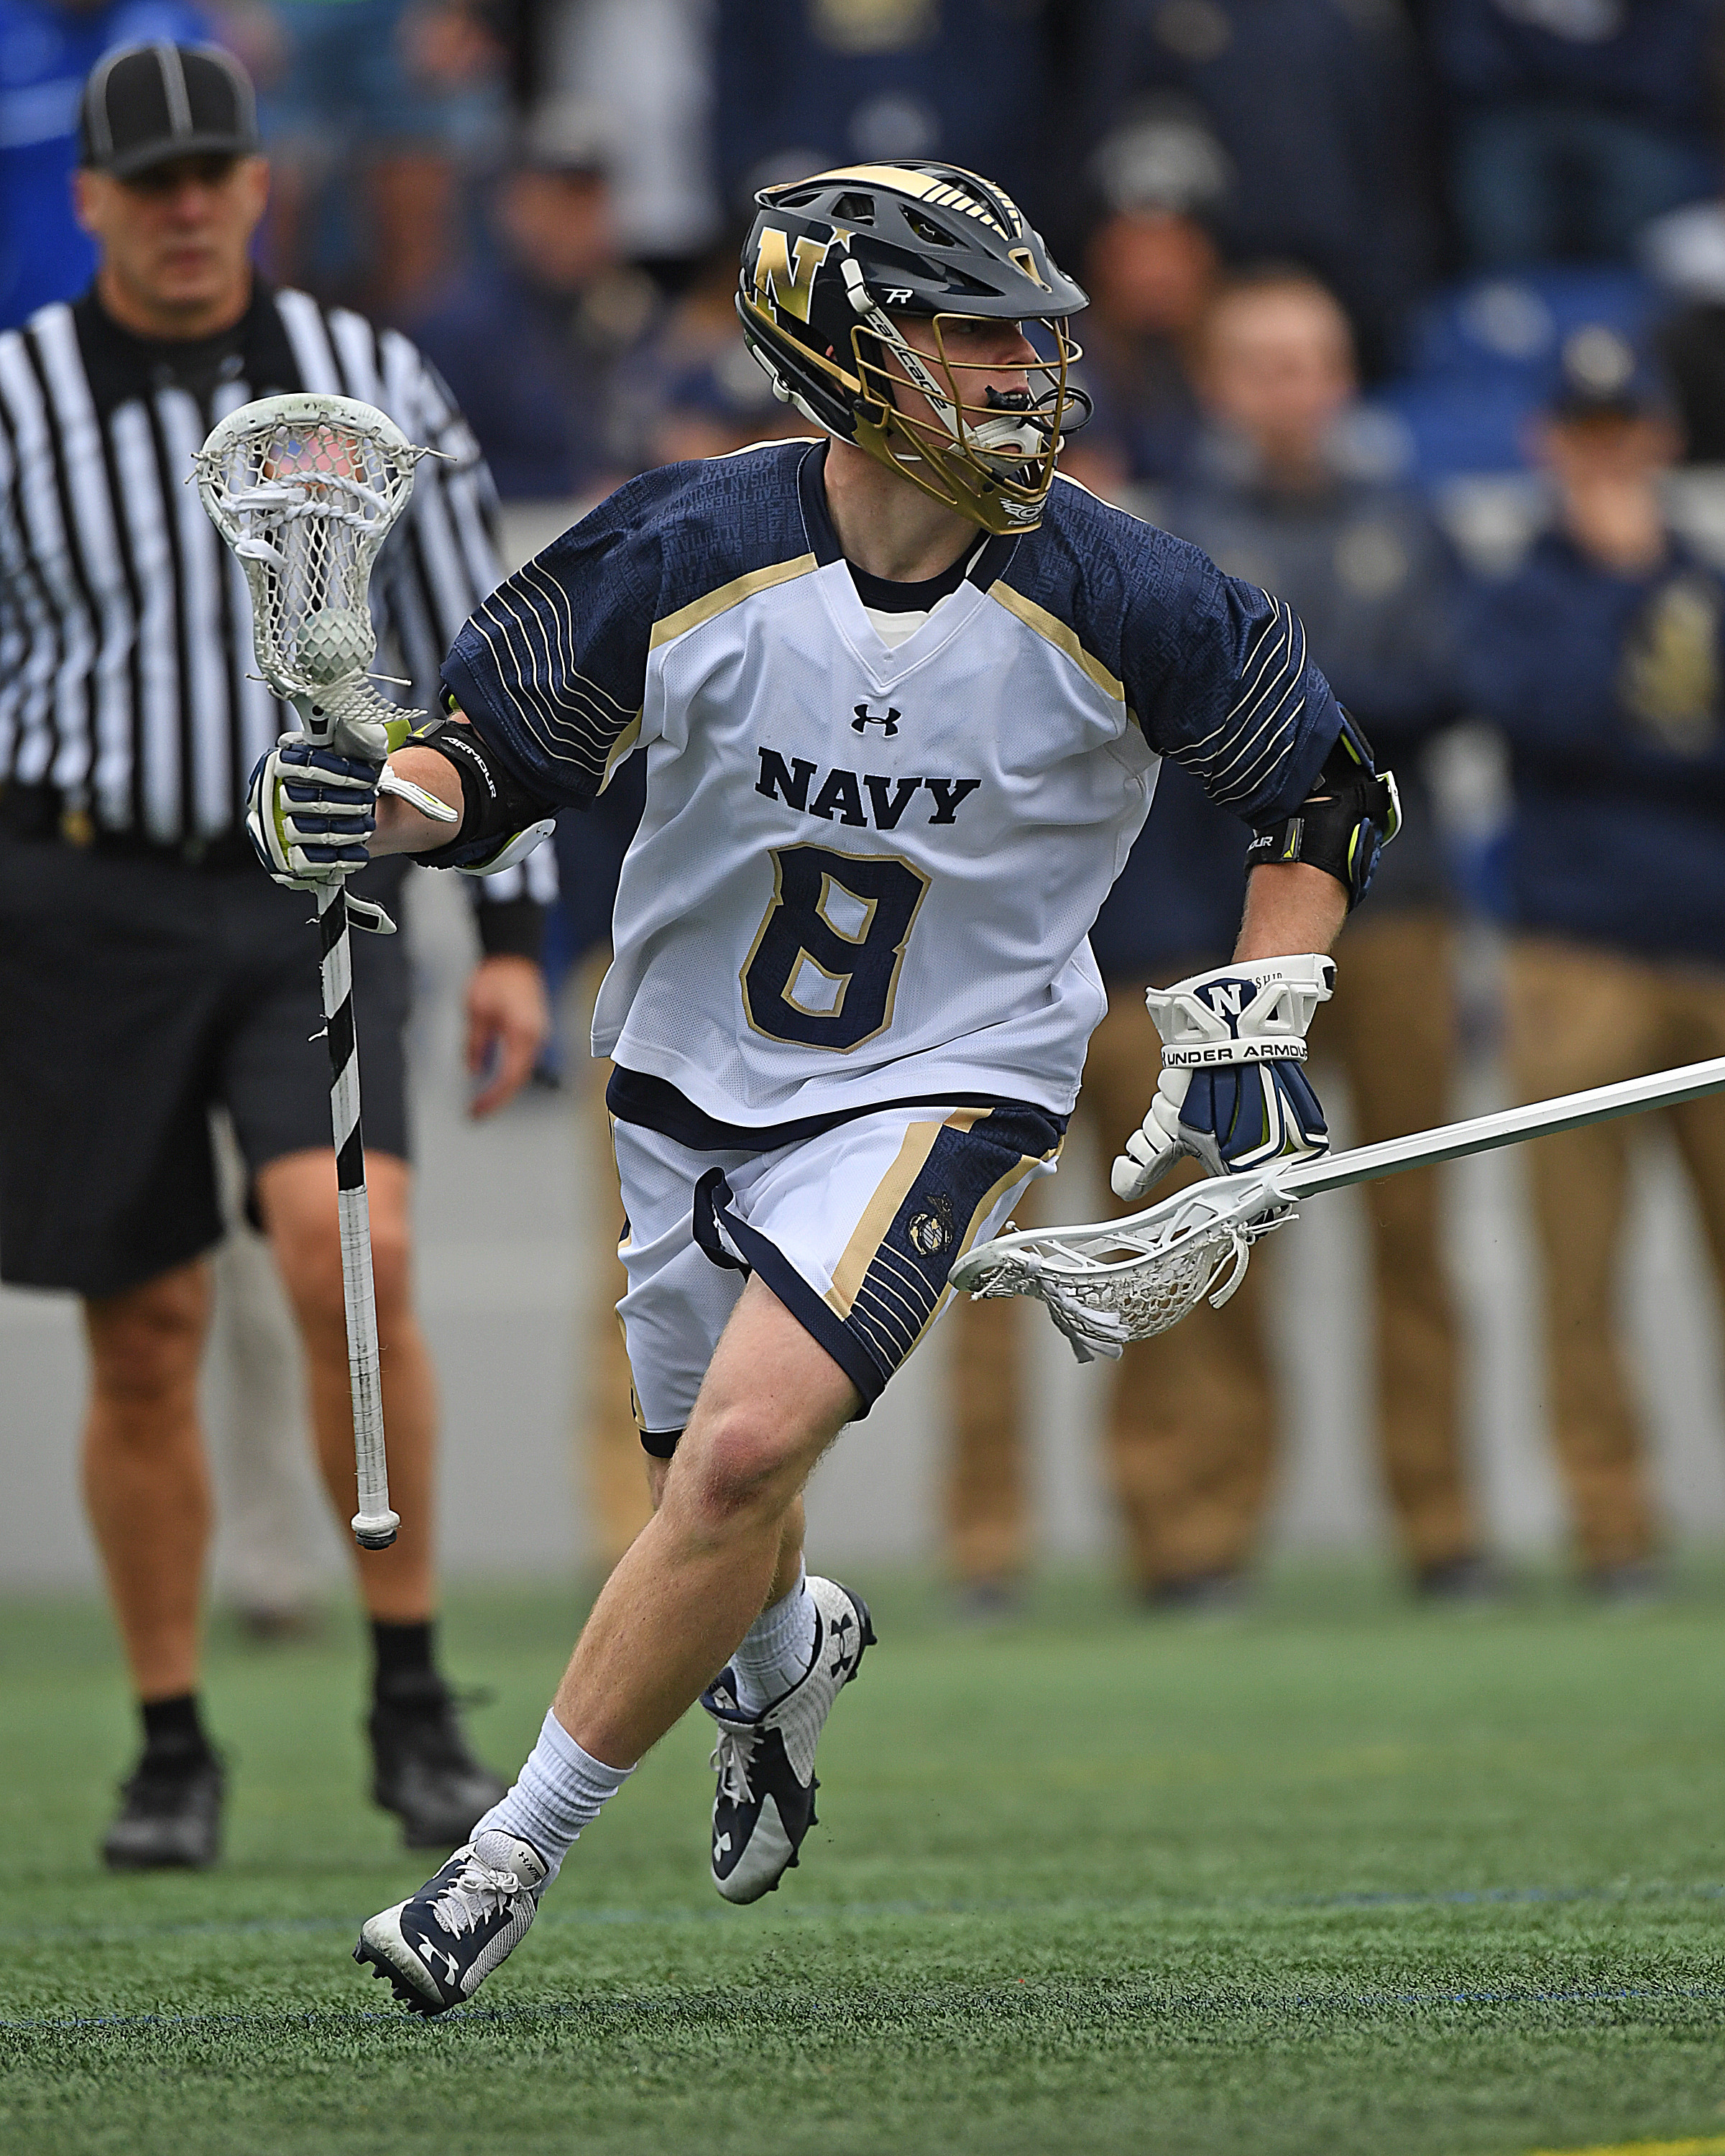 Navy Lax Bounces Back with 13-7 Win Over Bucknell - Naval